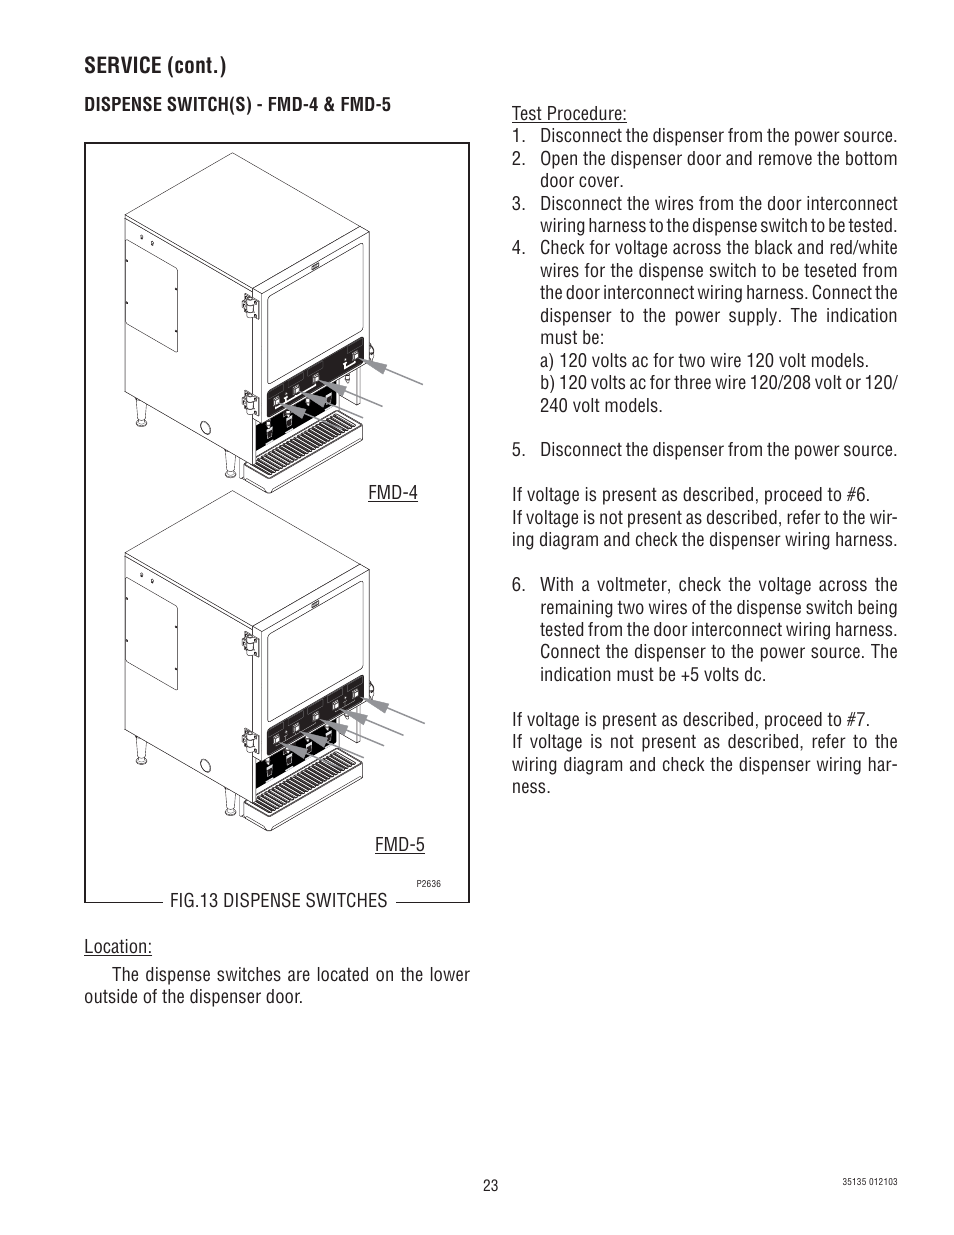 Bunn Switch Wiring Diagram Library Single Fmd 5 User Manual Page 23 45